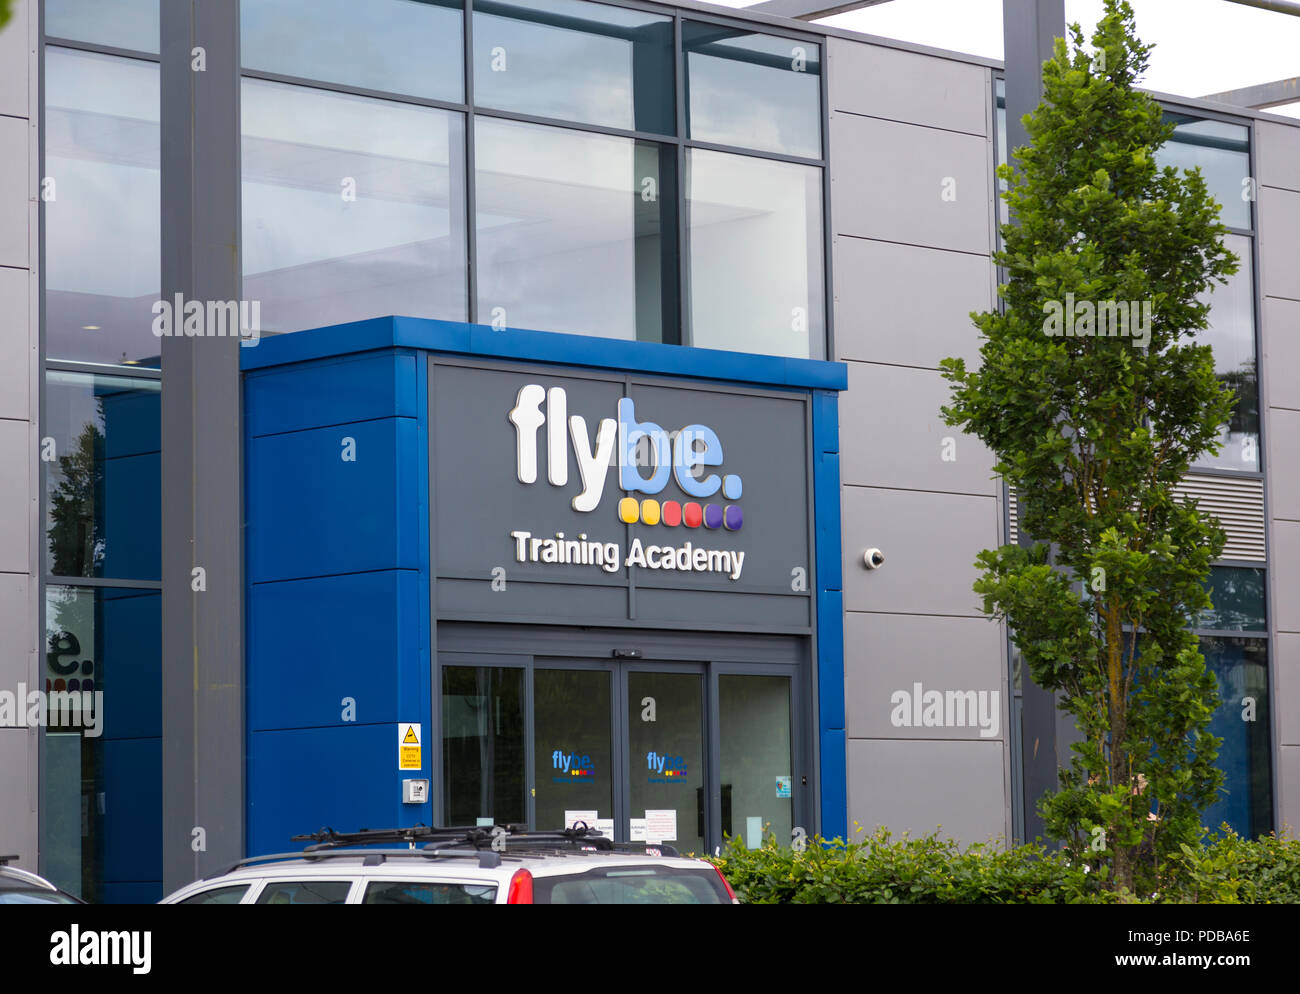 Flybe Training Academy in Exeter - Stock Image